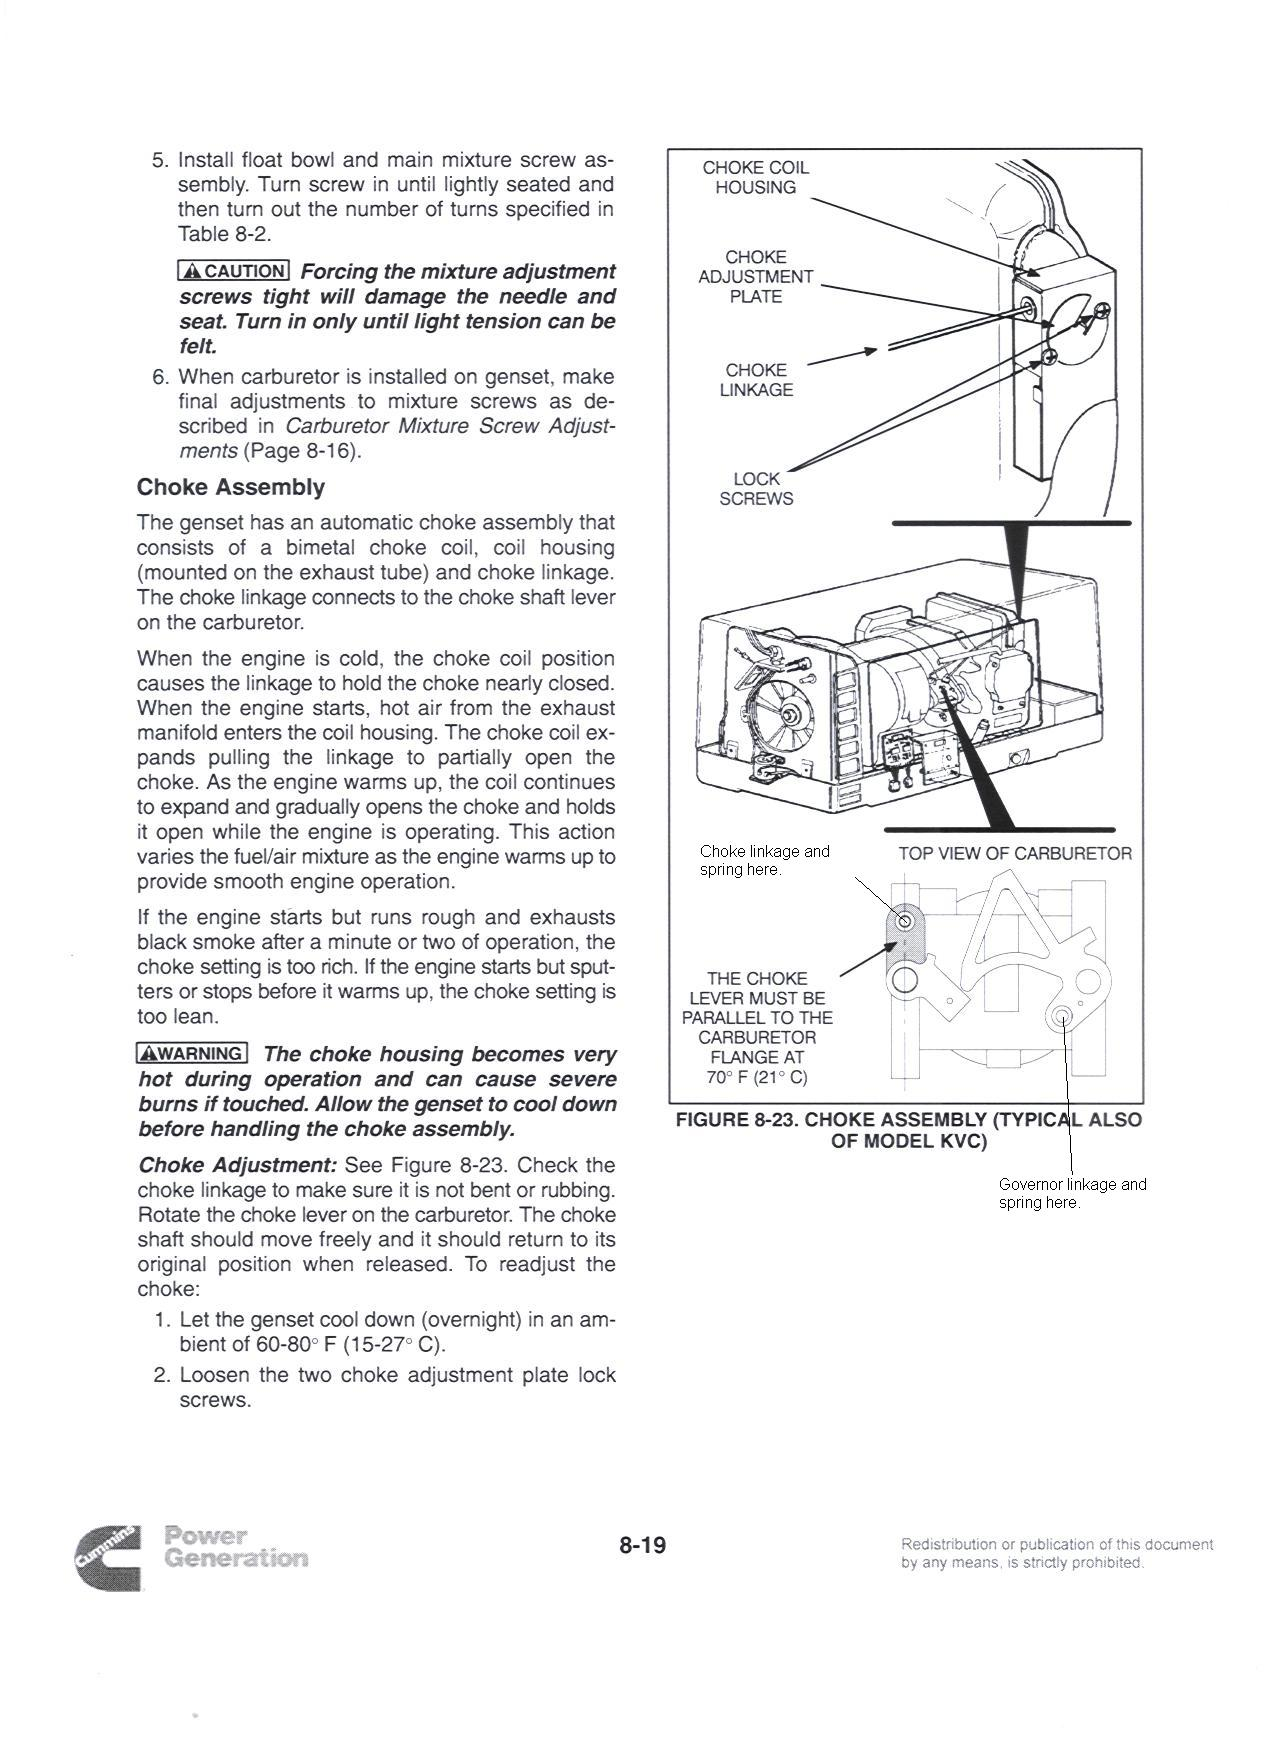 Onan Microlite 2800 Wiring Diagram 34 Images Emerald Generator Ther With 4000 Parts Free Image About 3 Rv Together